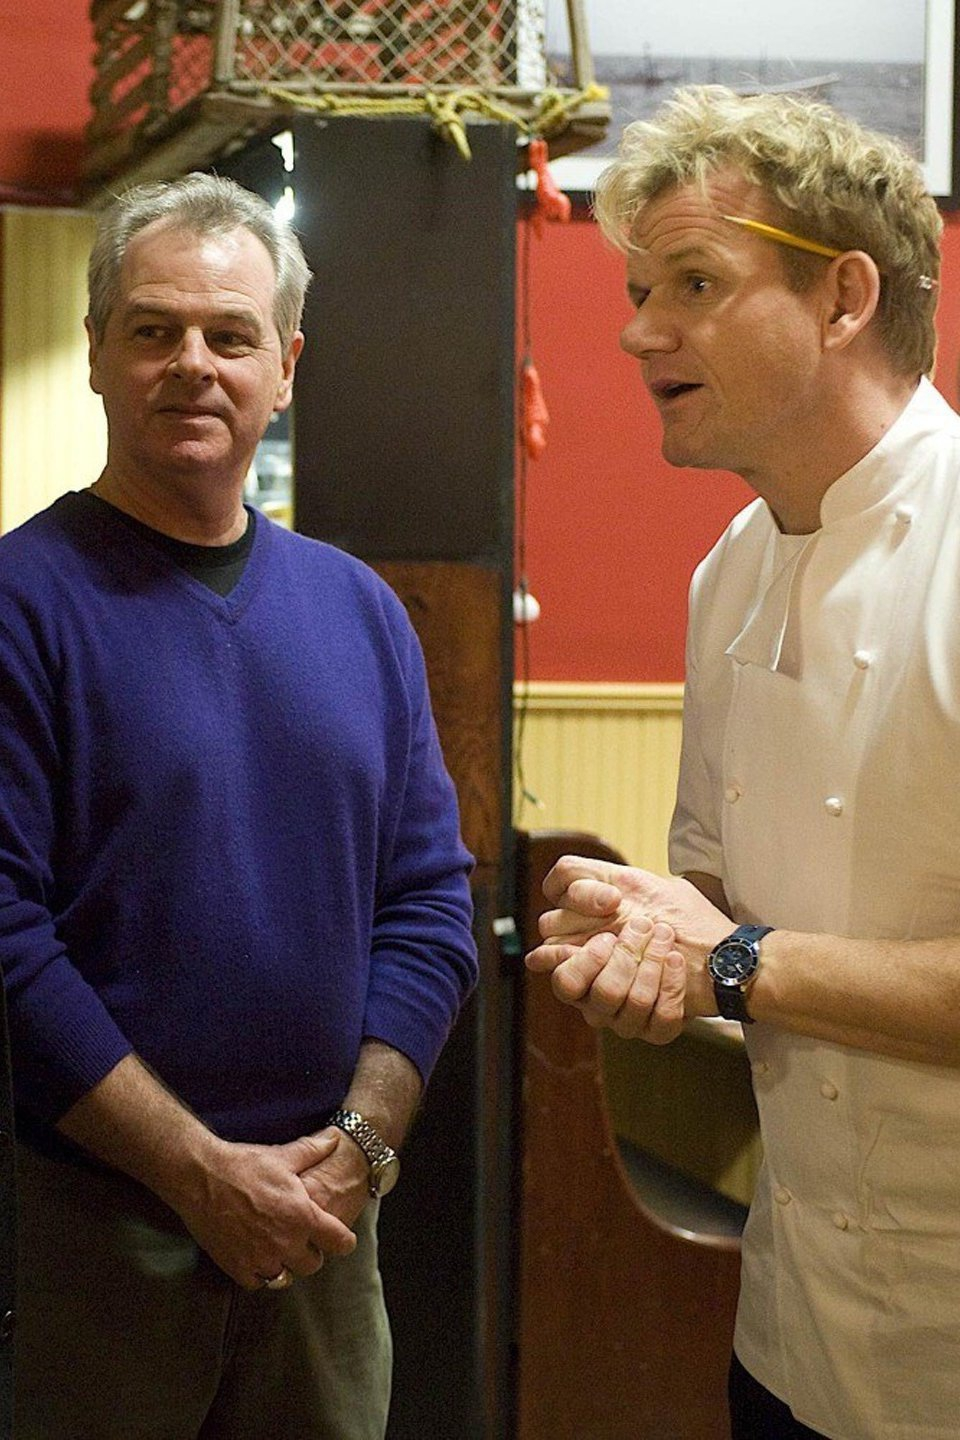 Watch kitchen nightmares s1 e16 episode 16 online for free the roku channel roku The secret garden kitchen nightmares